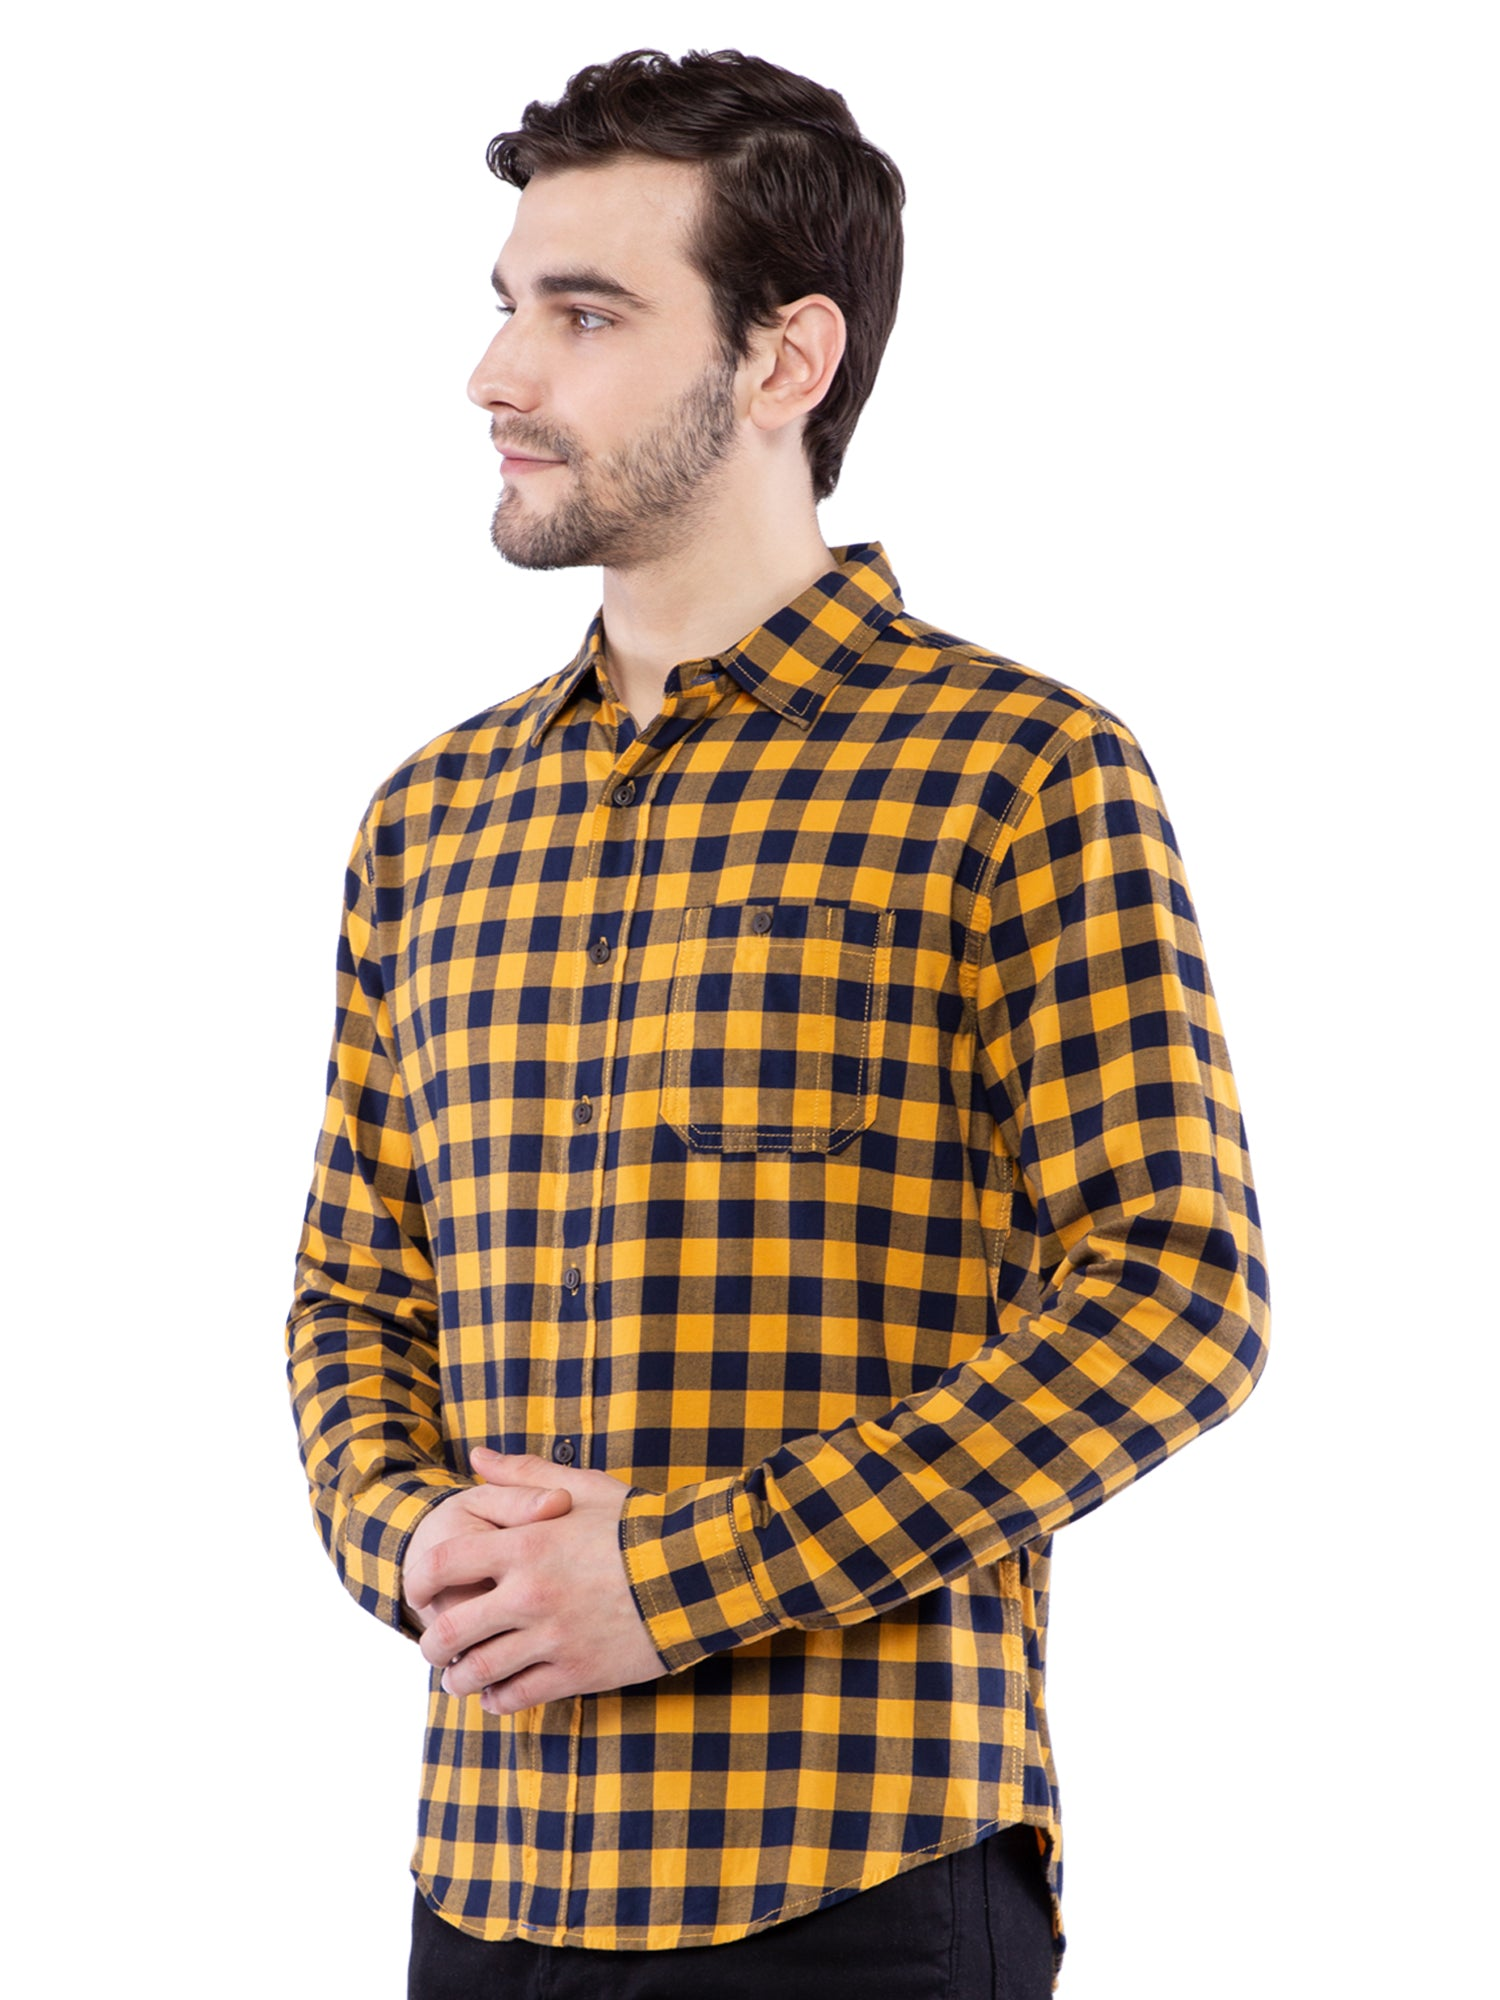 Aeropostale Men Multicolored Checkered Shirt